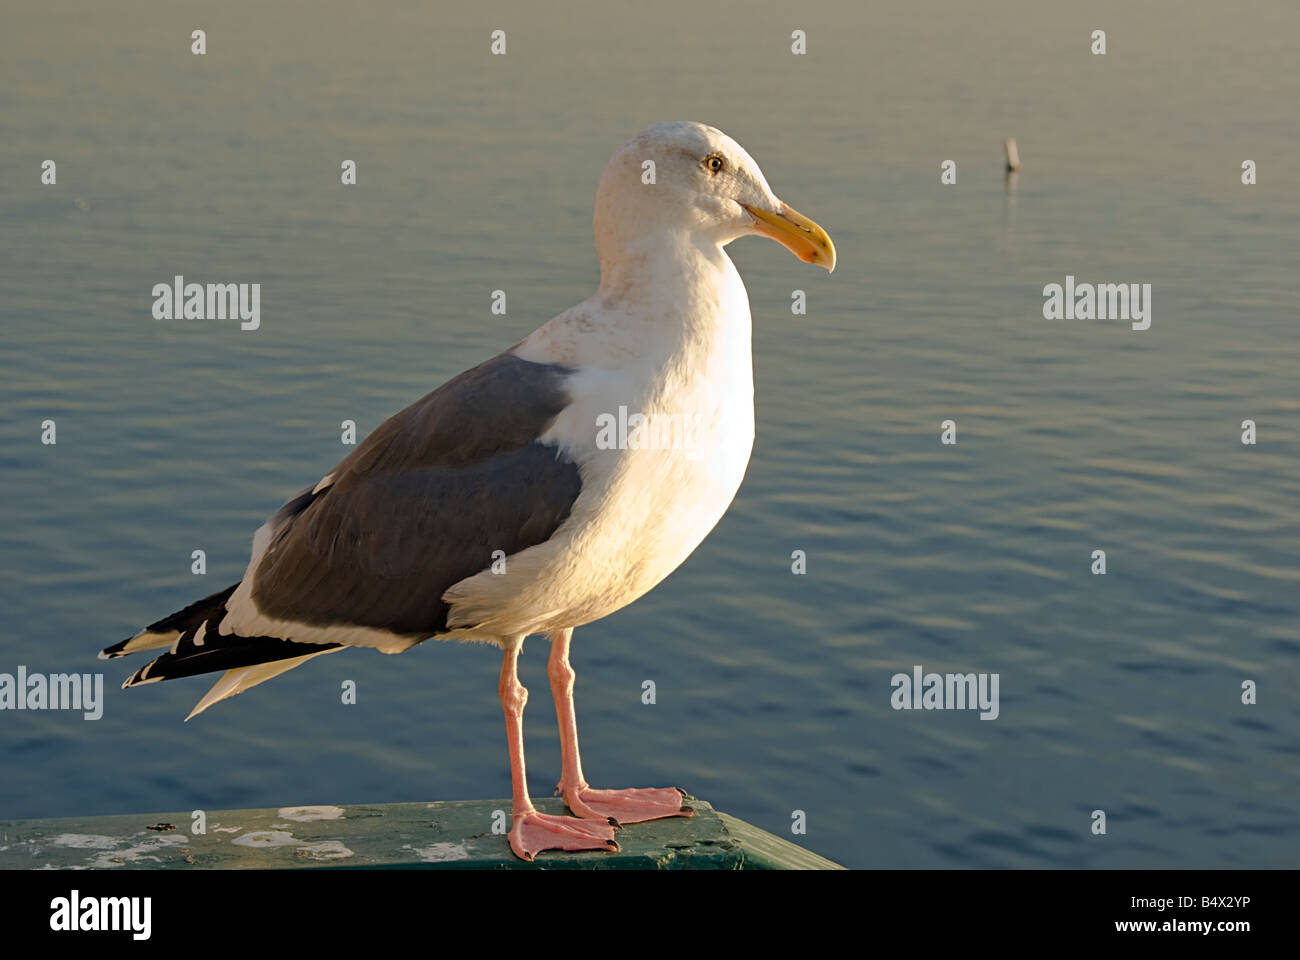 Male Sea Gull Santa Monica Bay CA, Pacific Park Pier - Stock Image